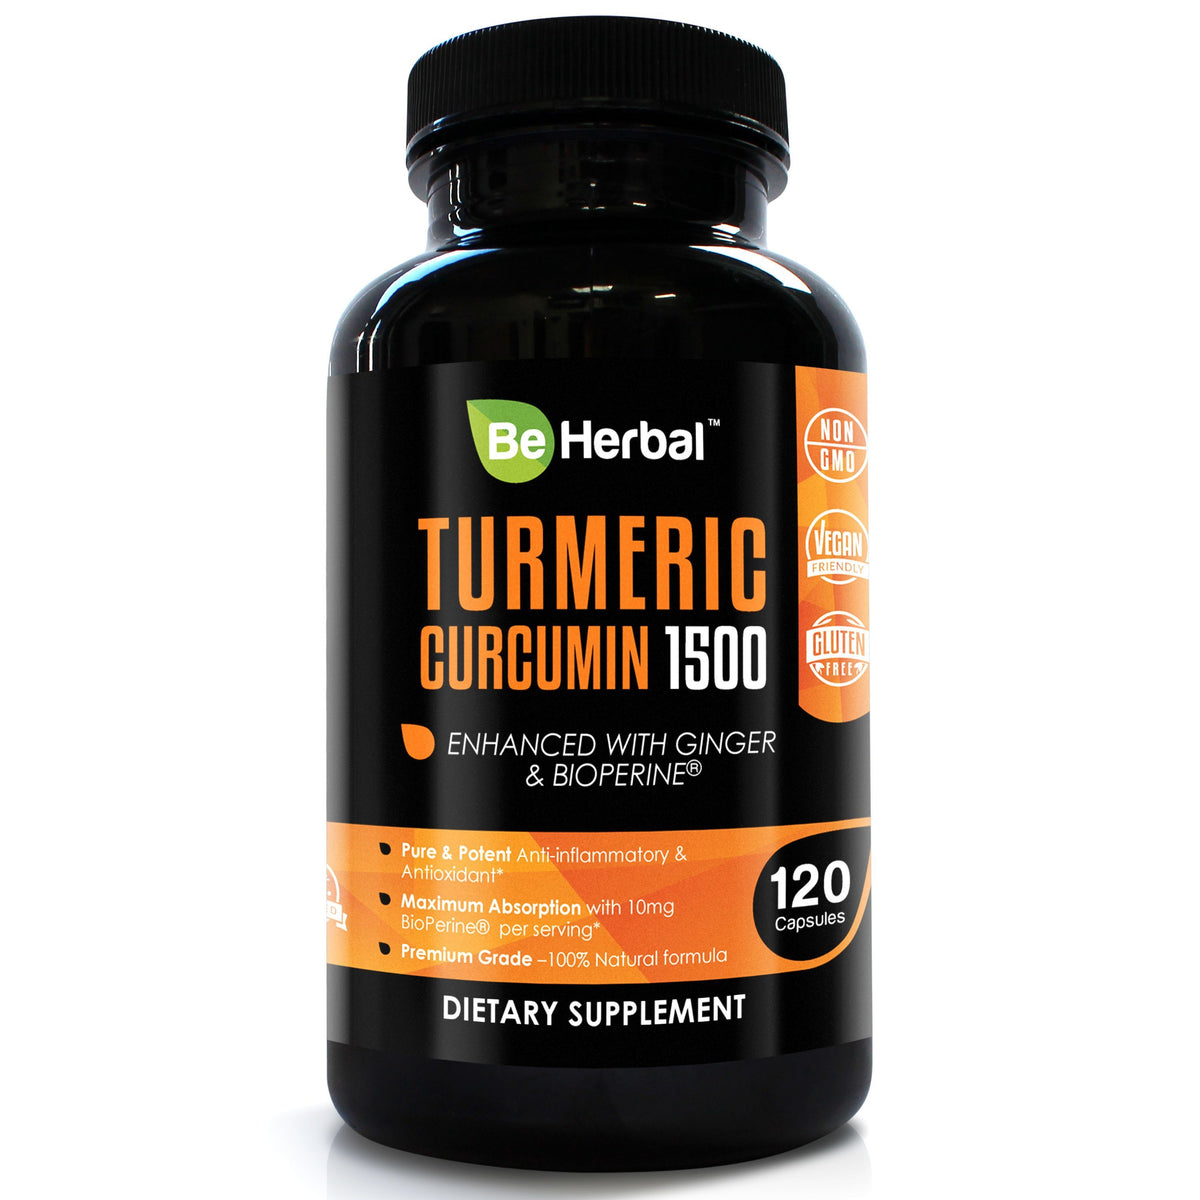 Premium Organic Turmeric Curcumin with BioPerine - 1500mg - 120 Veg Capsules Herbal Supplements Be Herbal